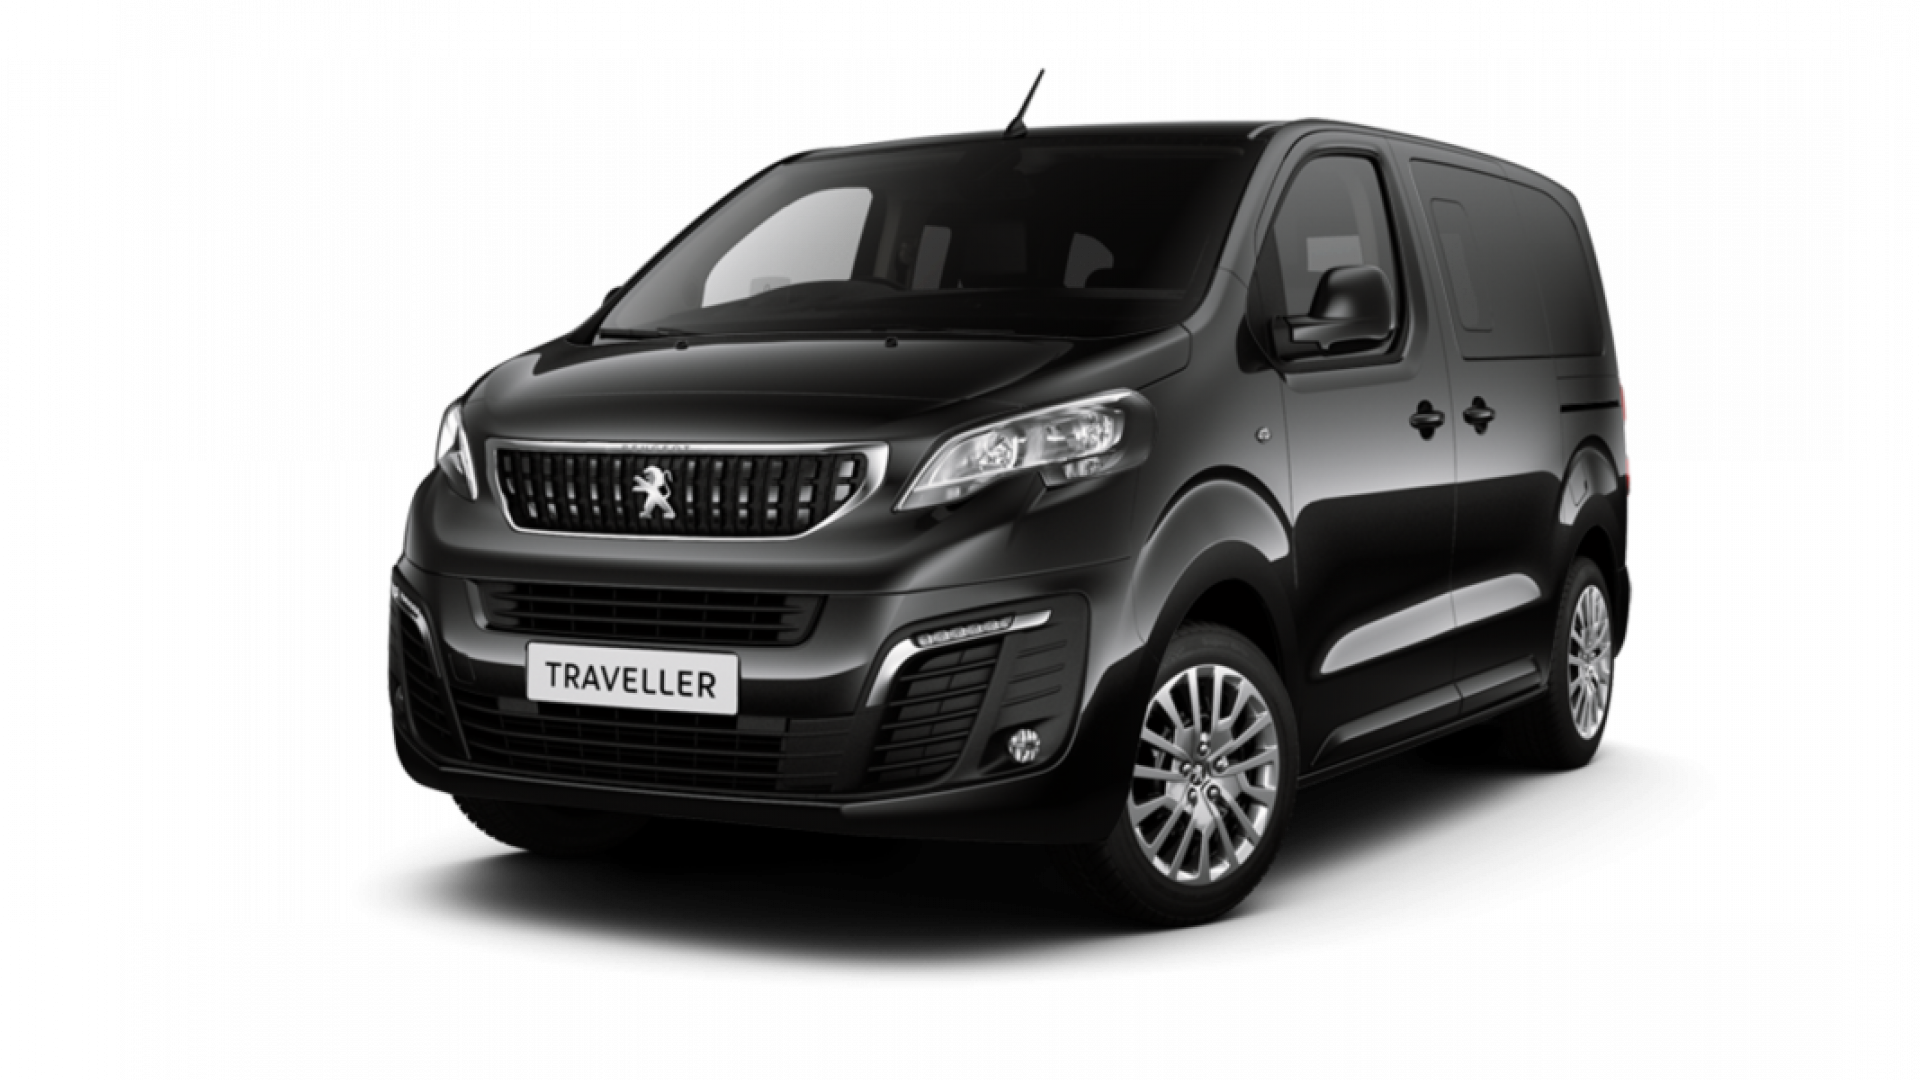 new peugeot traveller sw 1 6 bluehdi 95 active compact 8 seat 5dr etg6 robins and day. Black Bedroom Furniture Sets. Home Design Ideas